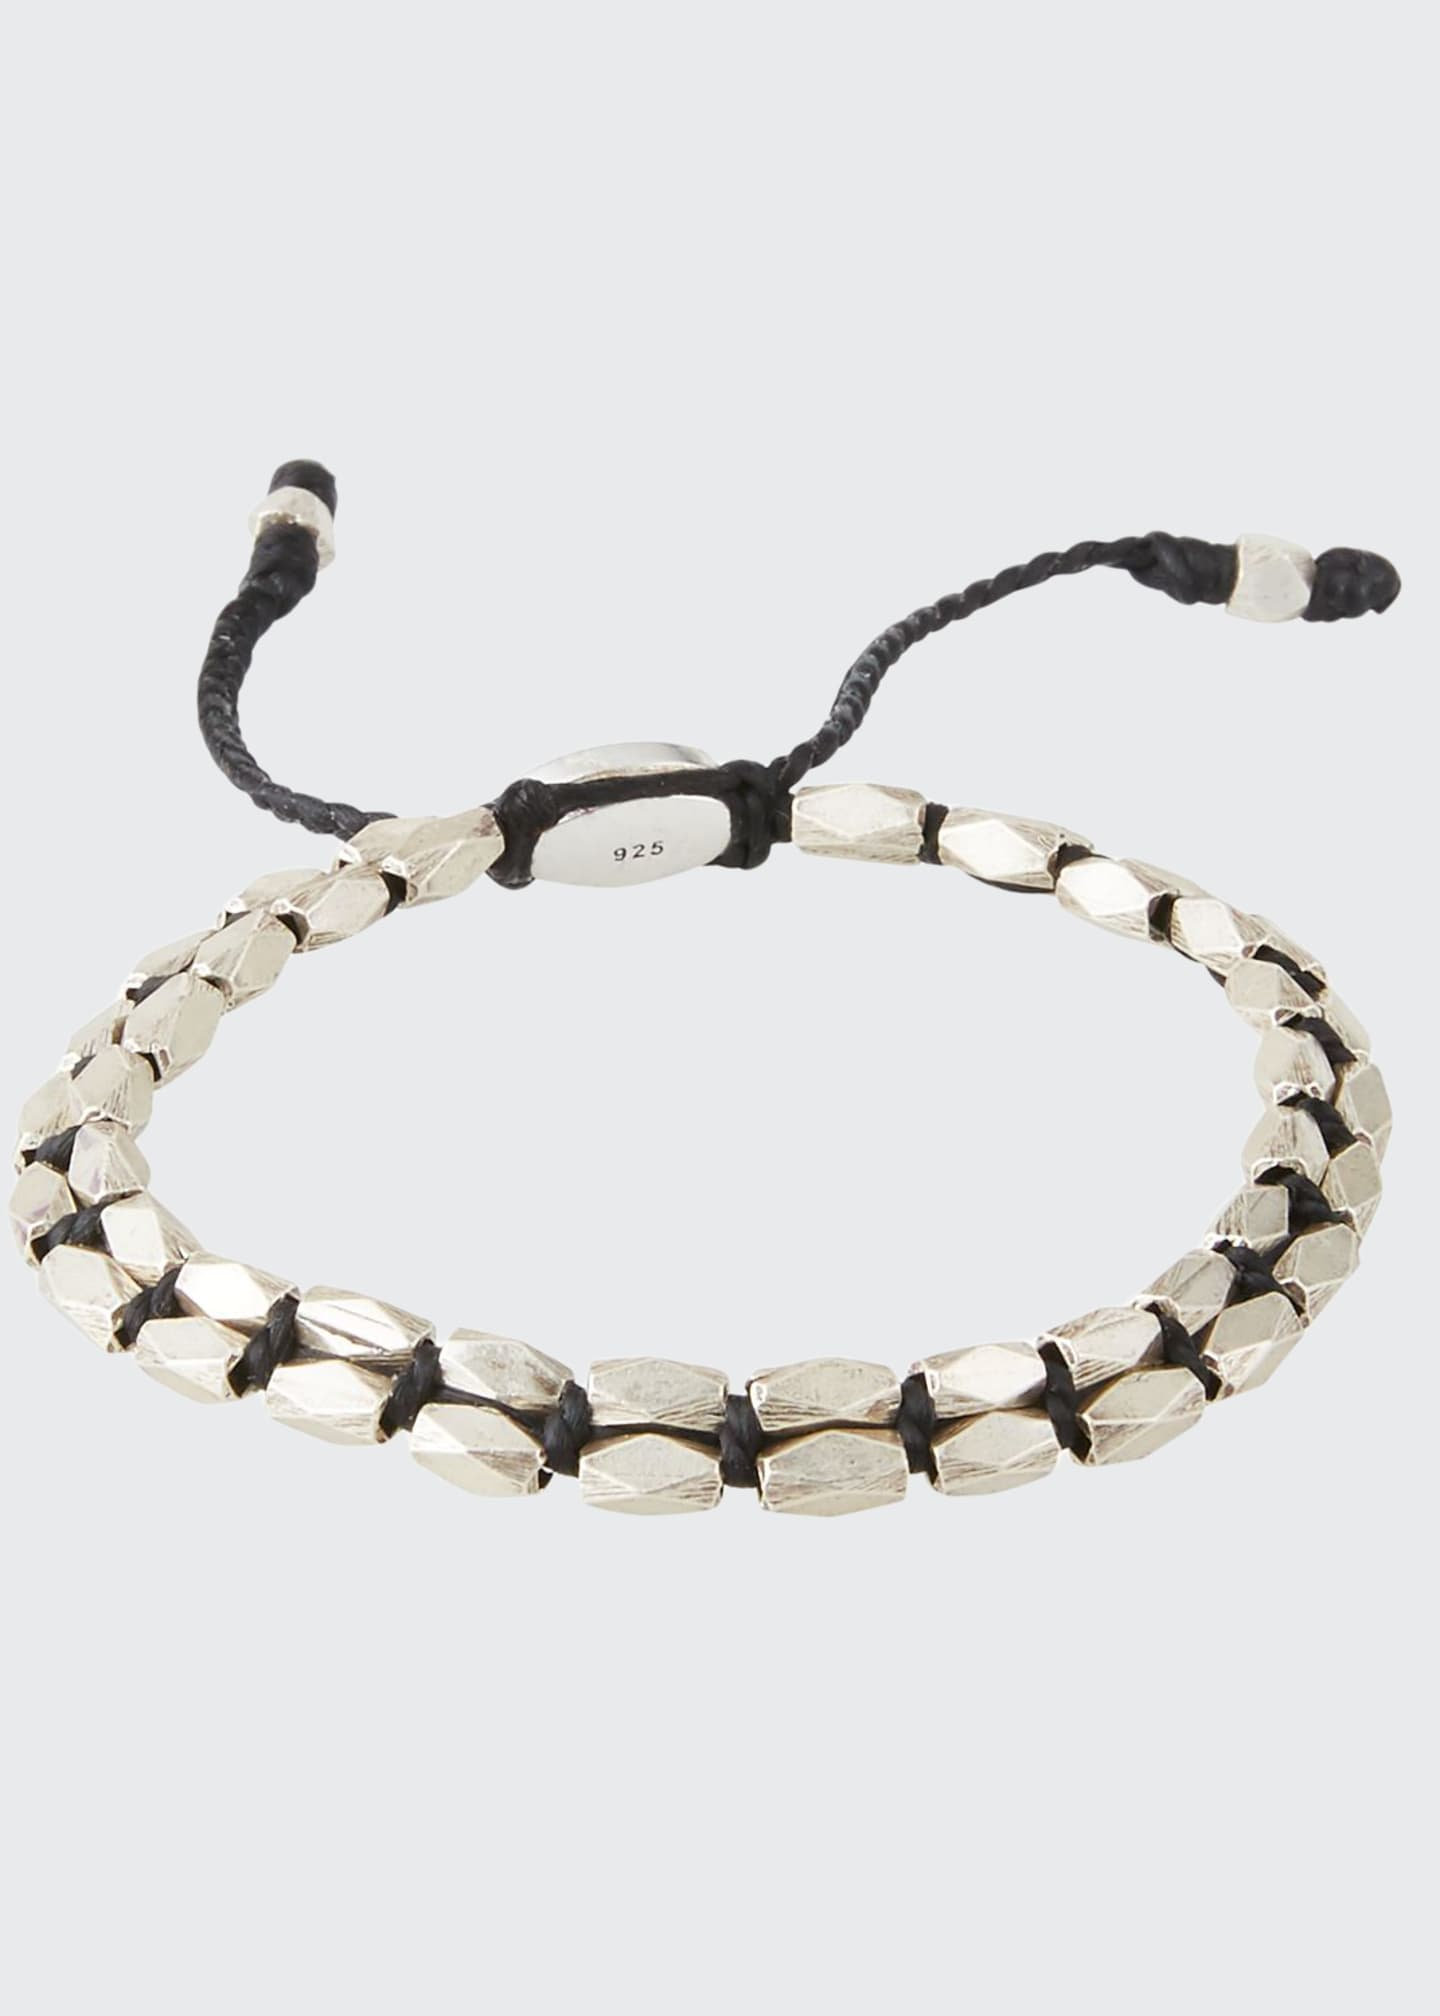 Image 1 of 1: Men's Sterling Silver Bead Bracelet, Black